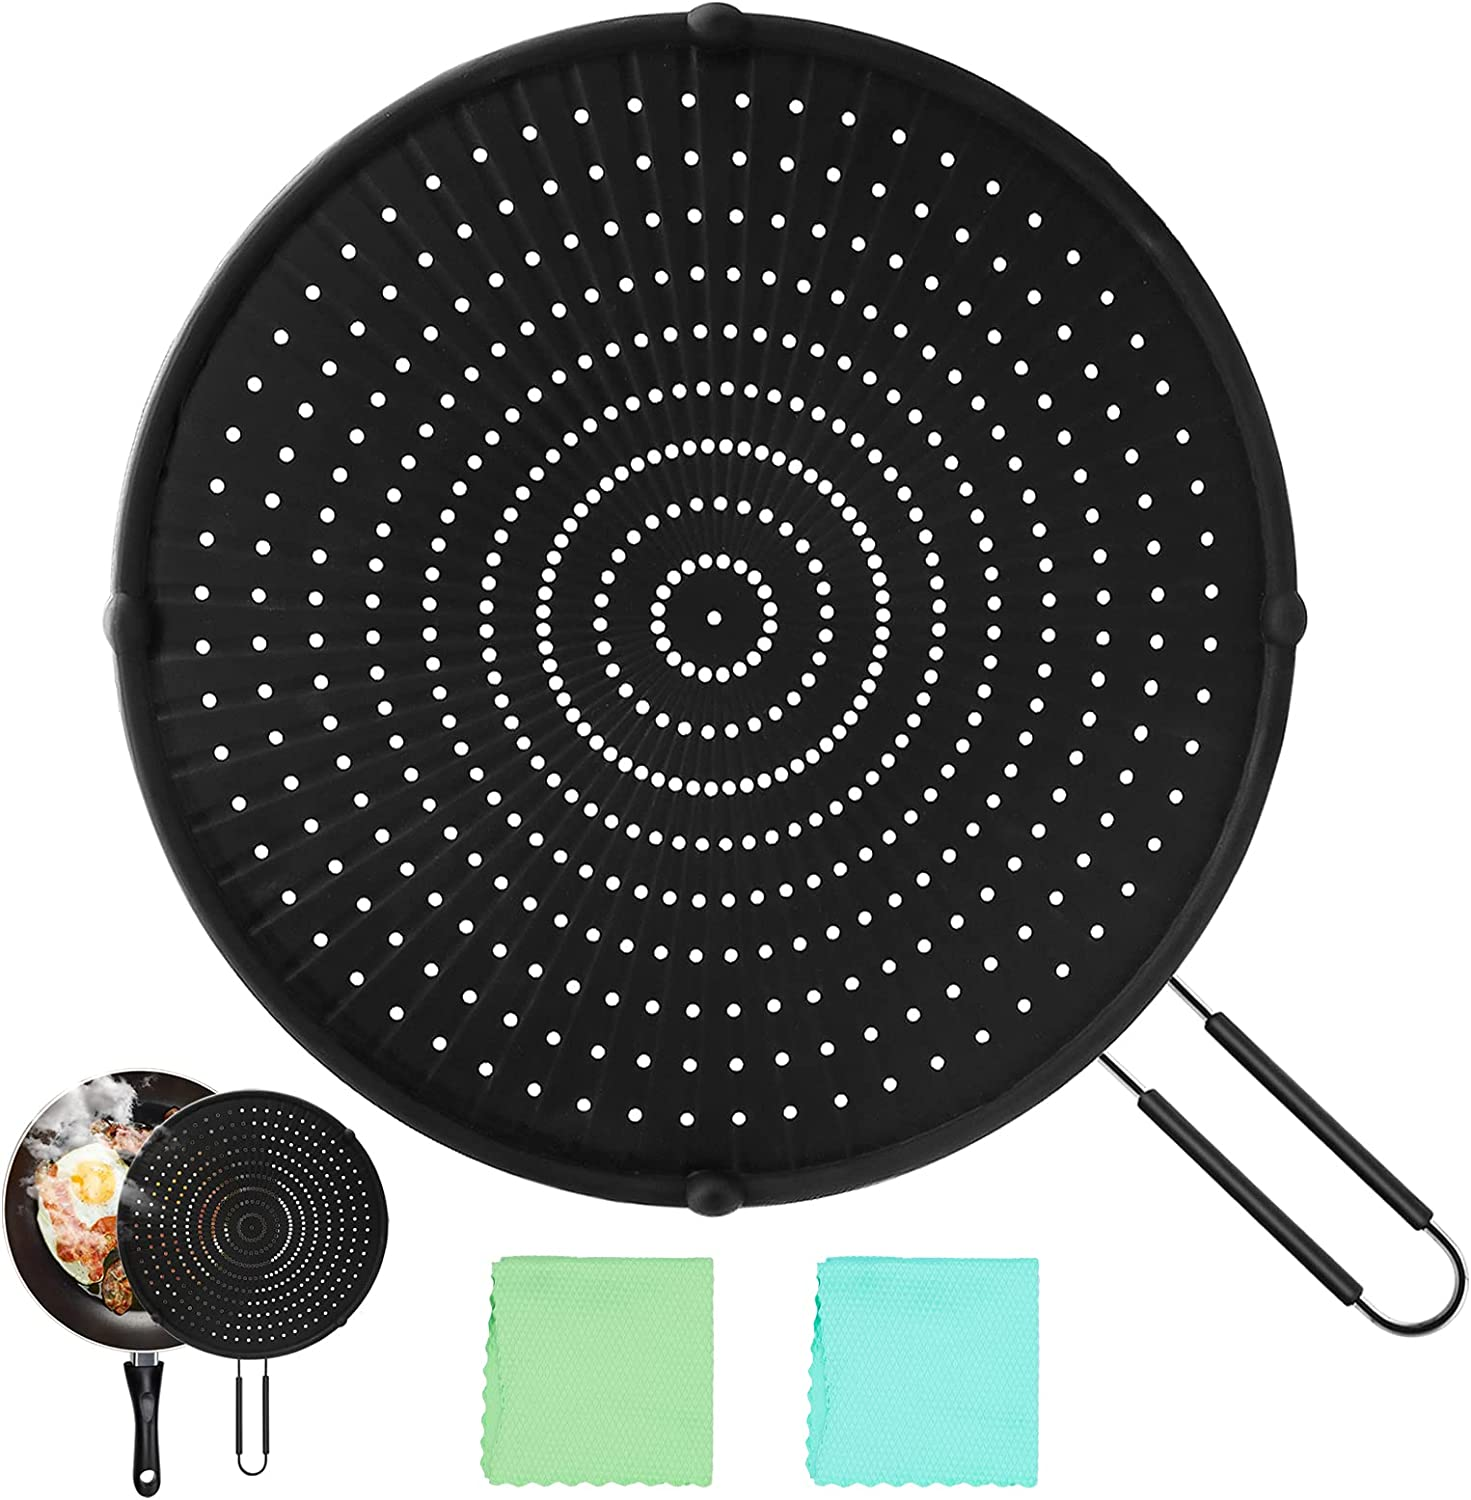 Silicone Splatter Screen for Frying Pan, 13 In High Heat Resistant Oil splatter Guard Universal Pan Cover, Food Safe Heat Insulation Cooling Mat, Strainer, Drain Board, Oil Splash Guard for Frying Pan